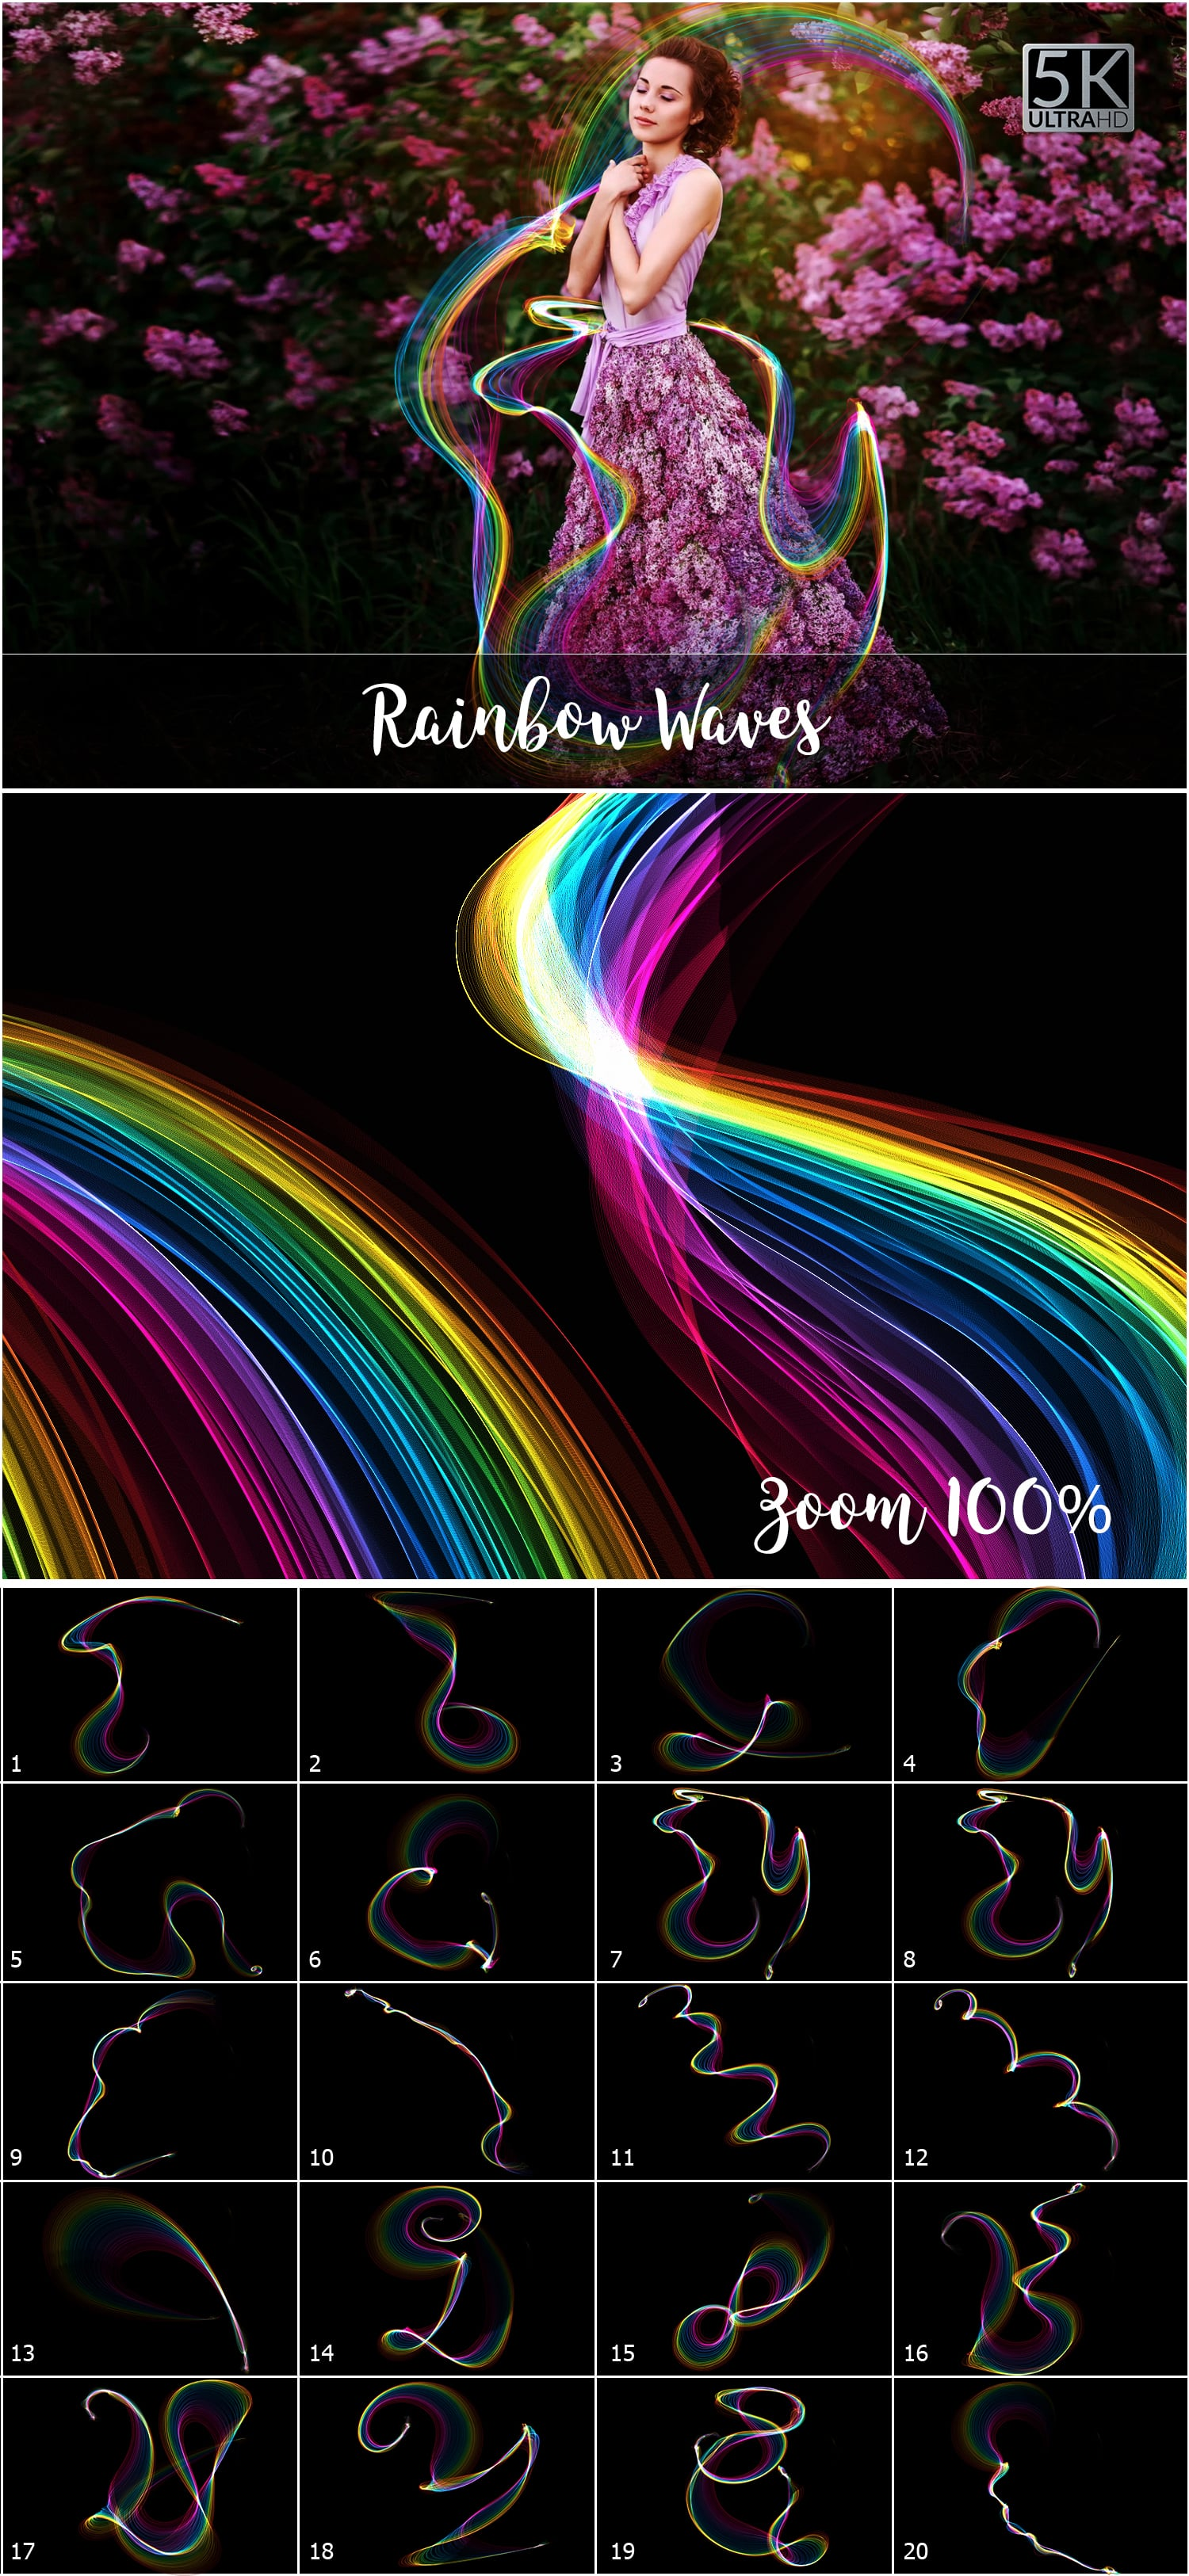 1053 Spectacular Overlays png - Only $18! - Rainbow Waves